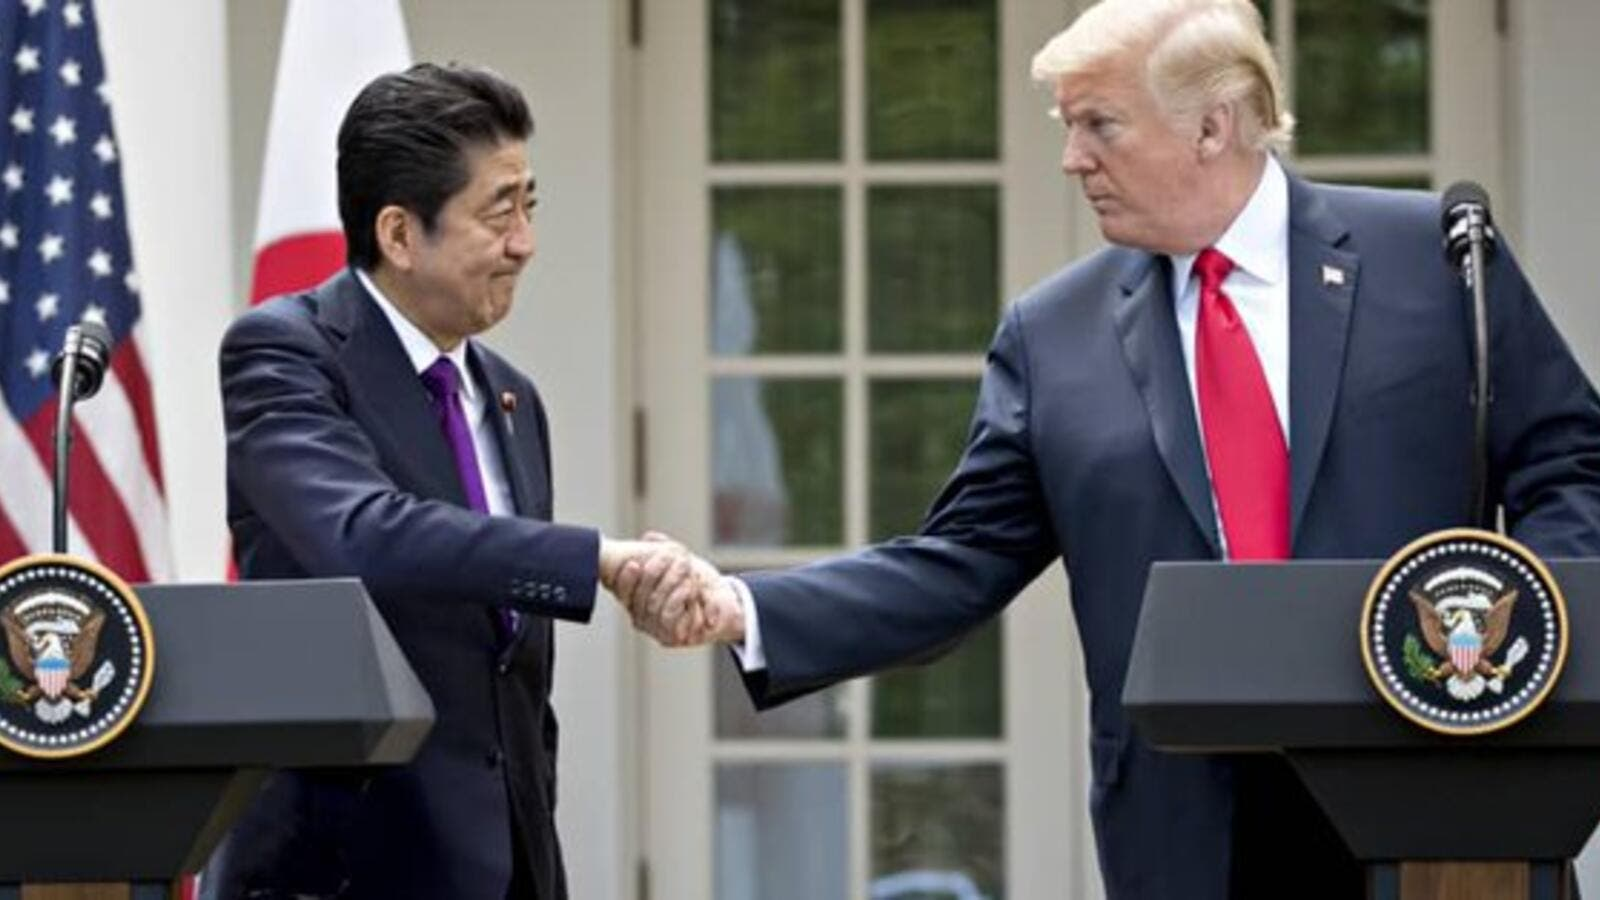 US President Donald Trump says his country is committed to Japan's security and strengthening the key alliance with it (Twitter)